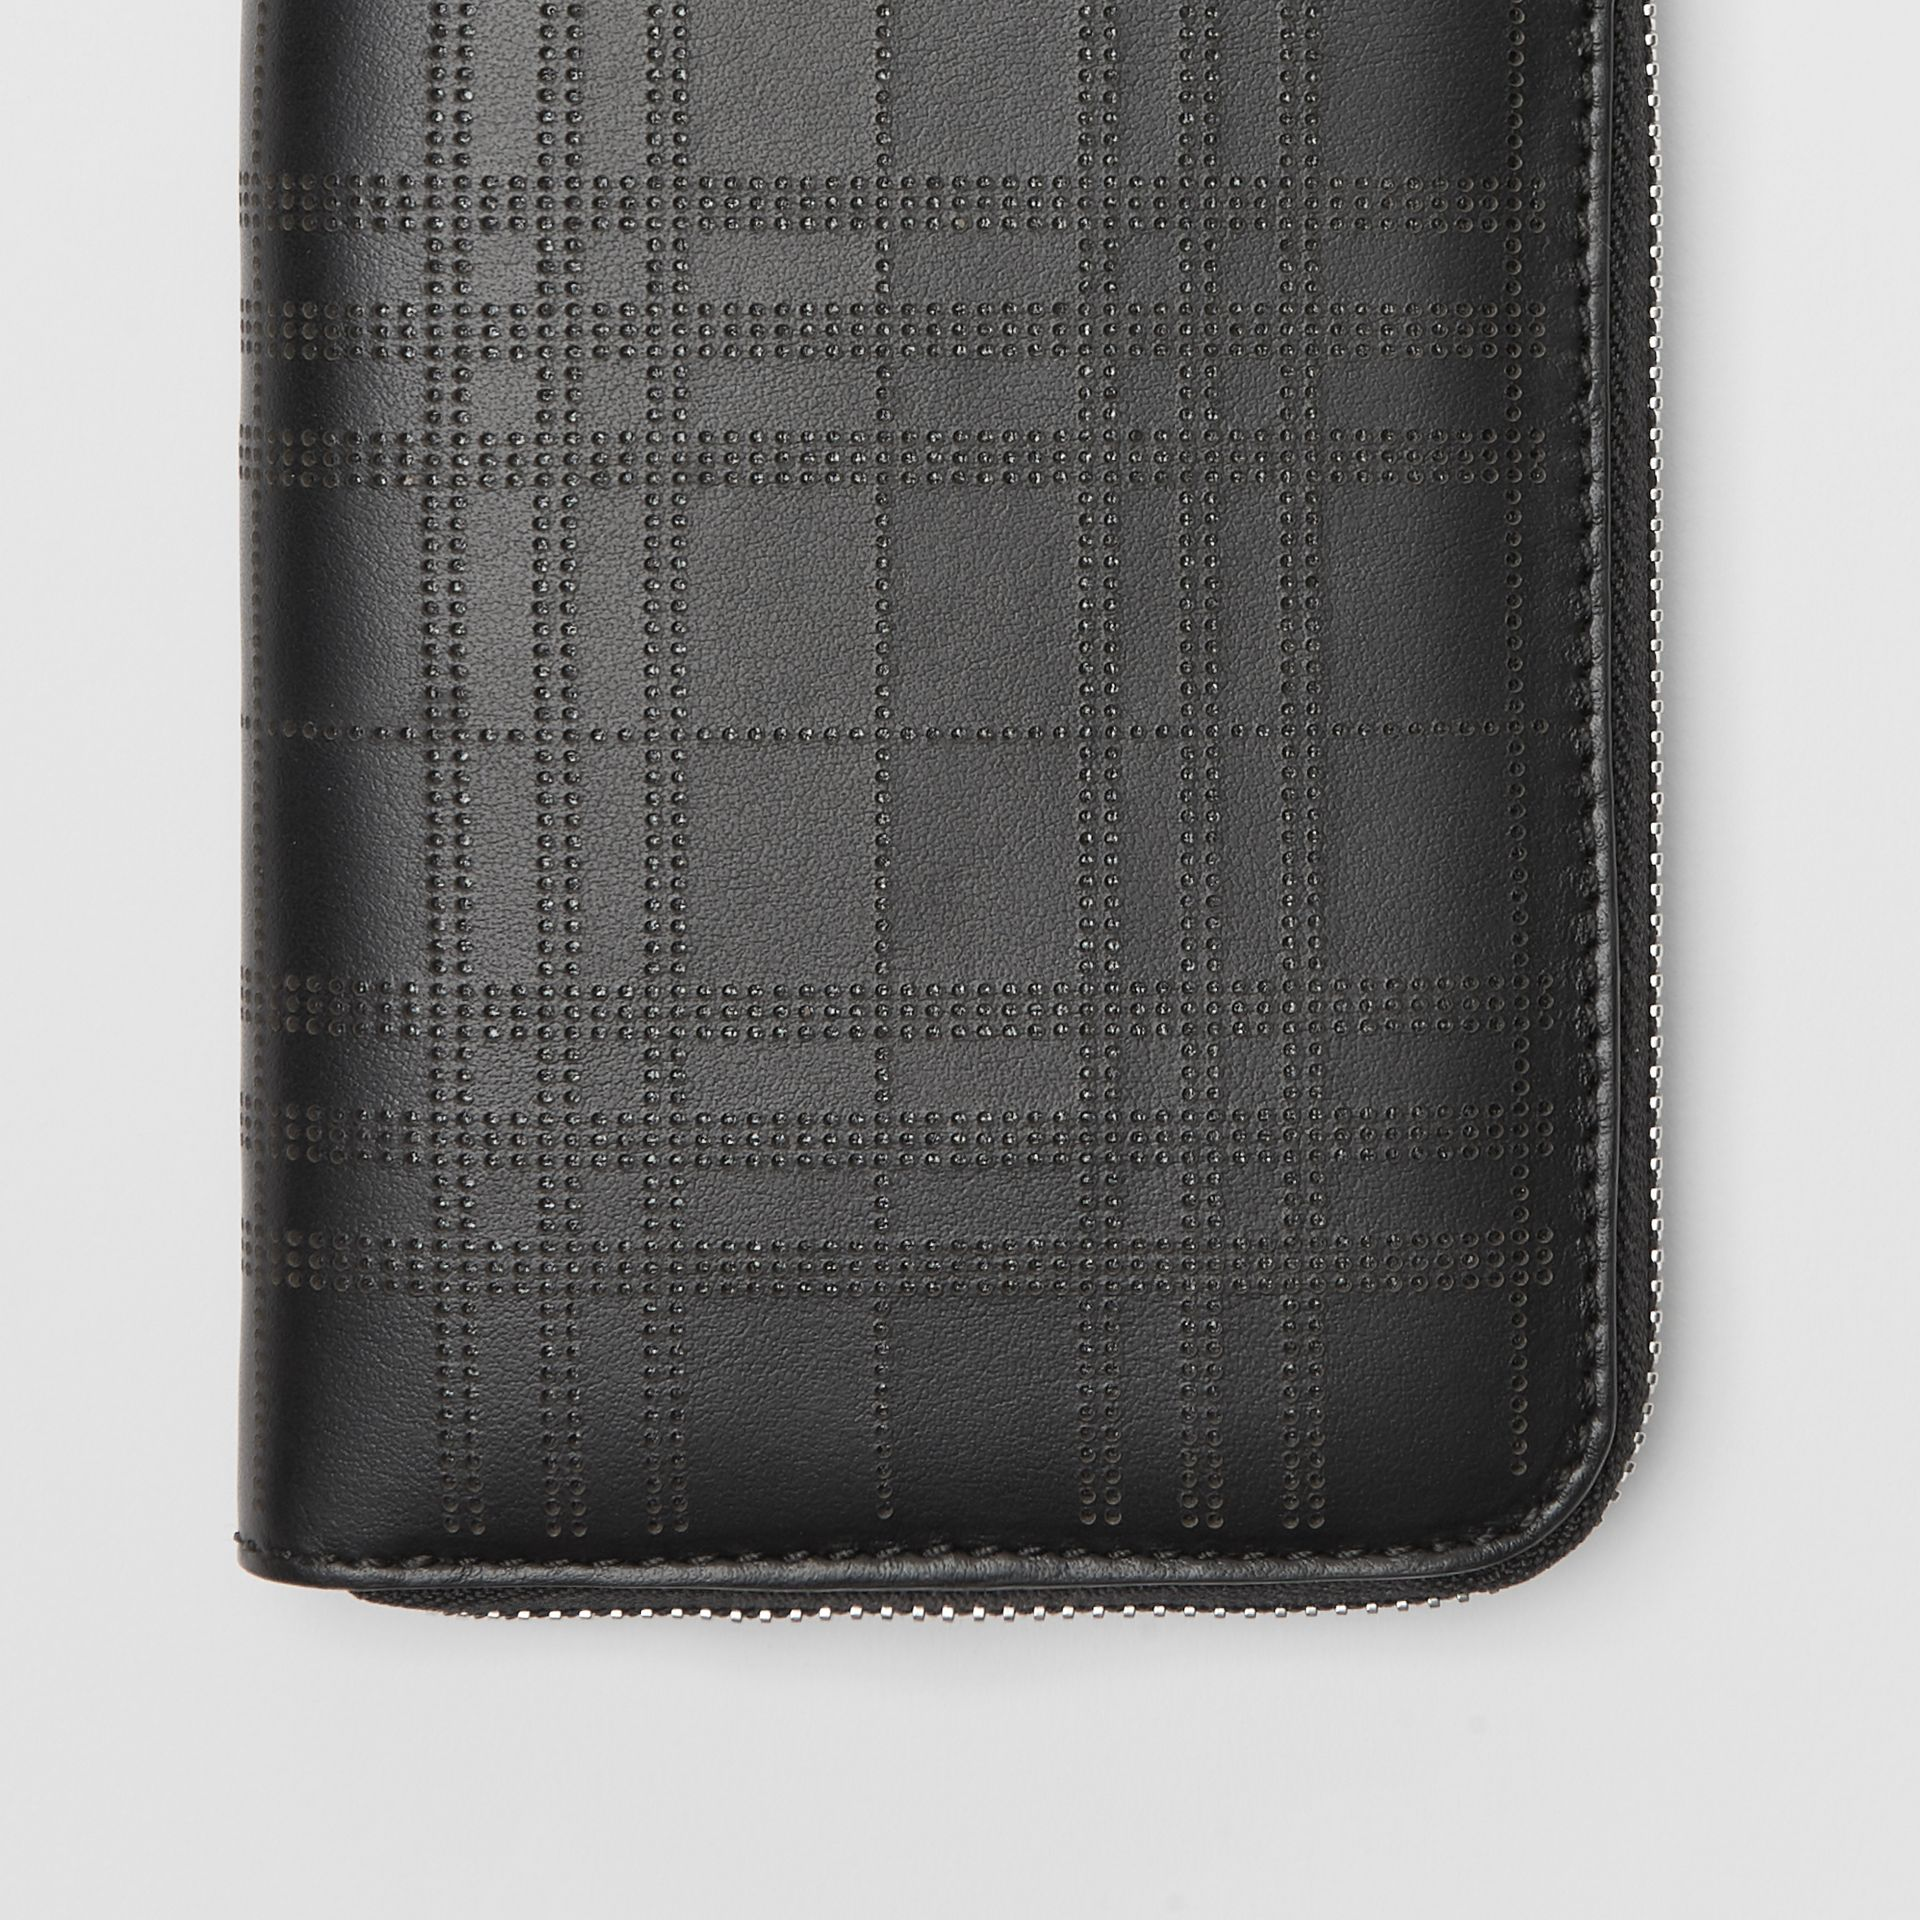 Perforated Check Leather Ziparound Wallet in Black - Men | Burberry Hong Kong - gallery image 1